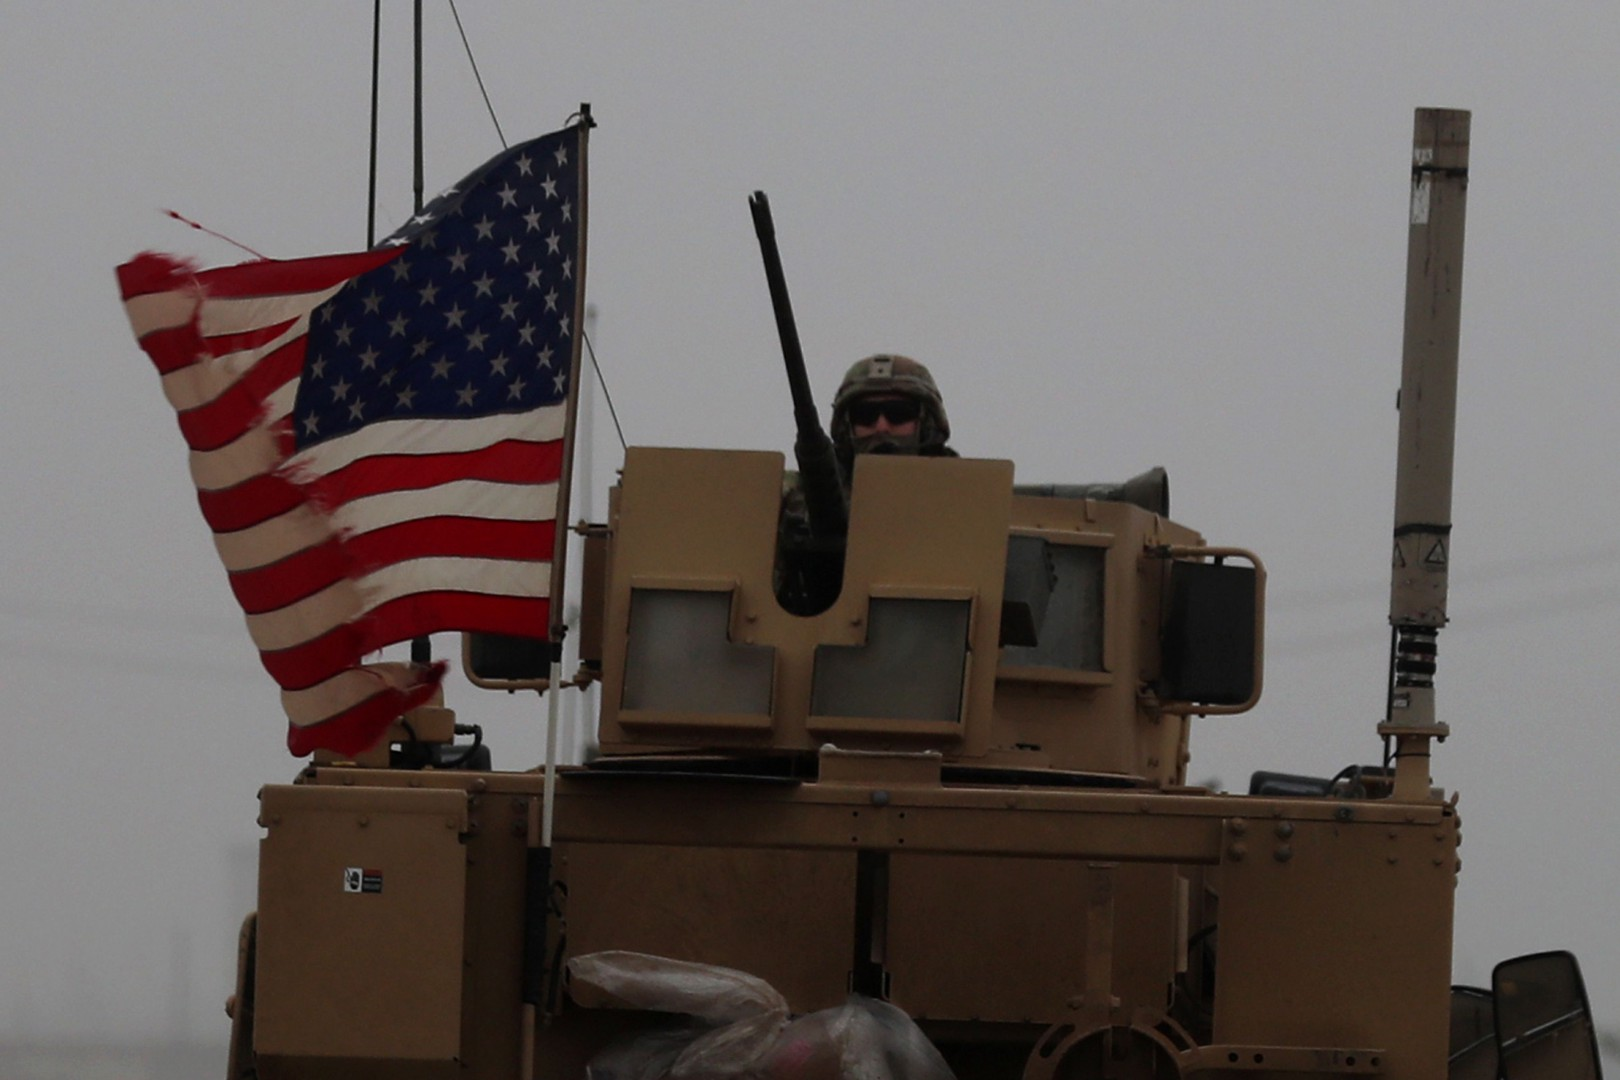 "(FILES) In this file photo taken on December 30,2018, shows a US soldier riding an armoured personnel carrier as a line of US military vehicles patrol Syria's northern city of Manbij. - US President Donald Trump on January 7, 2019 sought to end fears of an abrupt US pullout from Syria, saying the fight against the Islamic State group was not over and that withdrawal would be done in a ""prudent"" manner.""We will be leaving at a proper pace while at the same time continuing to fight ISIS and doing all else that is prudent and necessary!"" Trump tweeted. (Photo by Delil SOULEIMAN / AFP)"